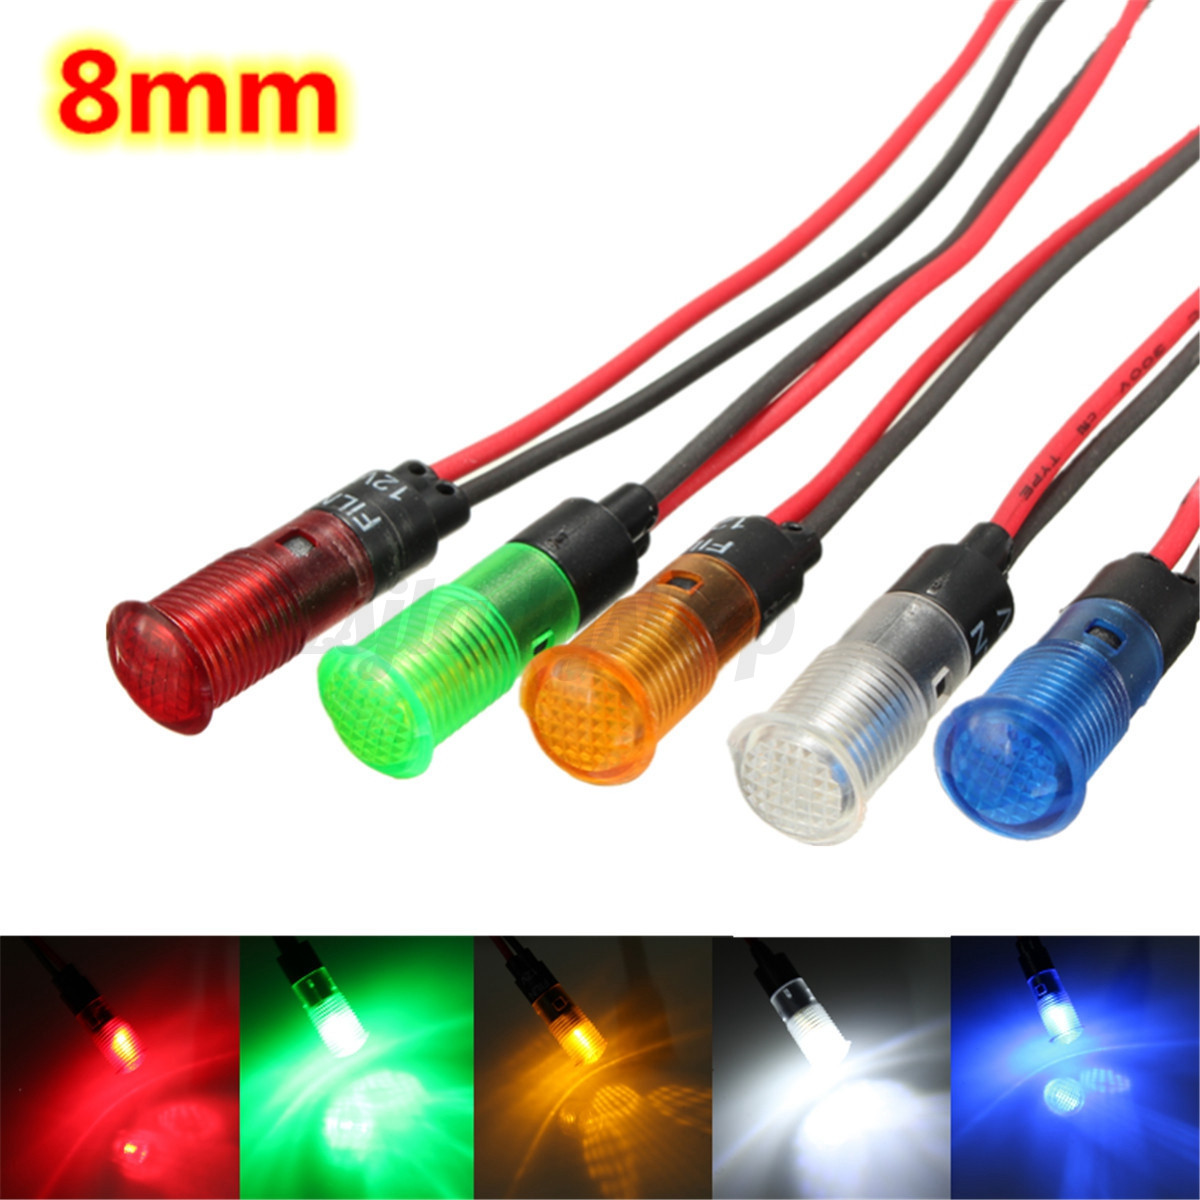 5x 12v 8mm led indicator warning light lamp dash. Black Bedroom Furniture Sets. Home Design Ideas